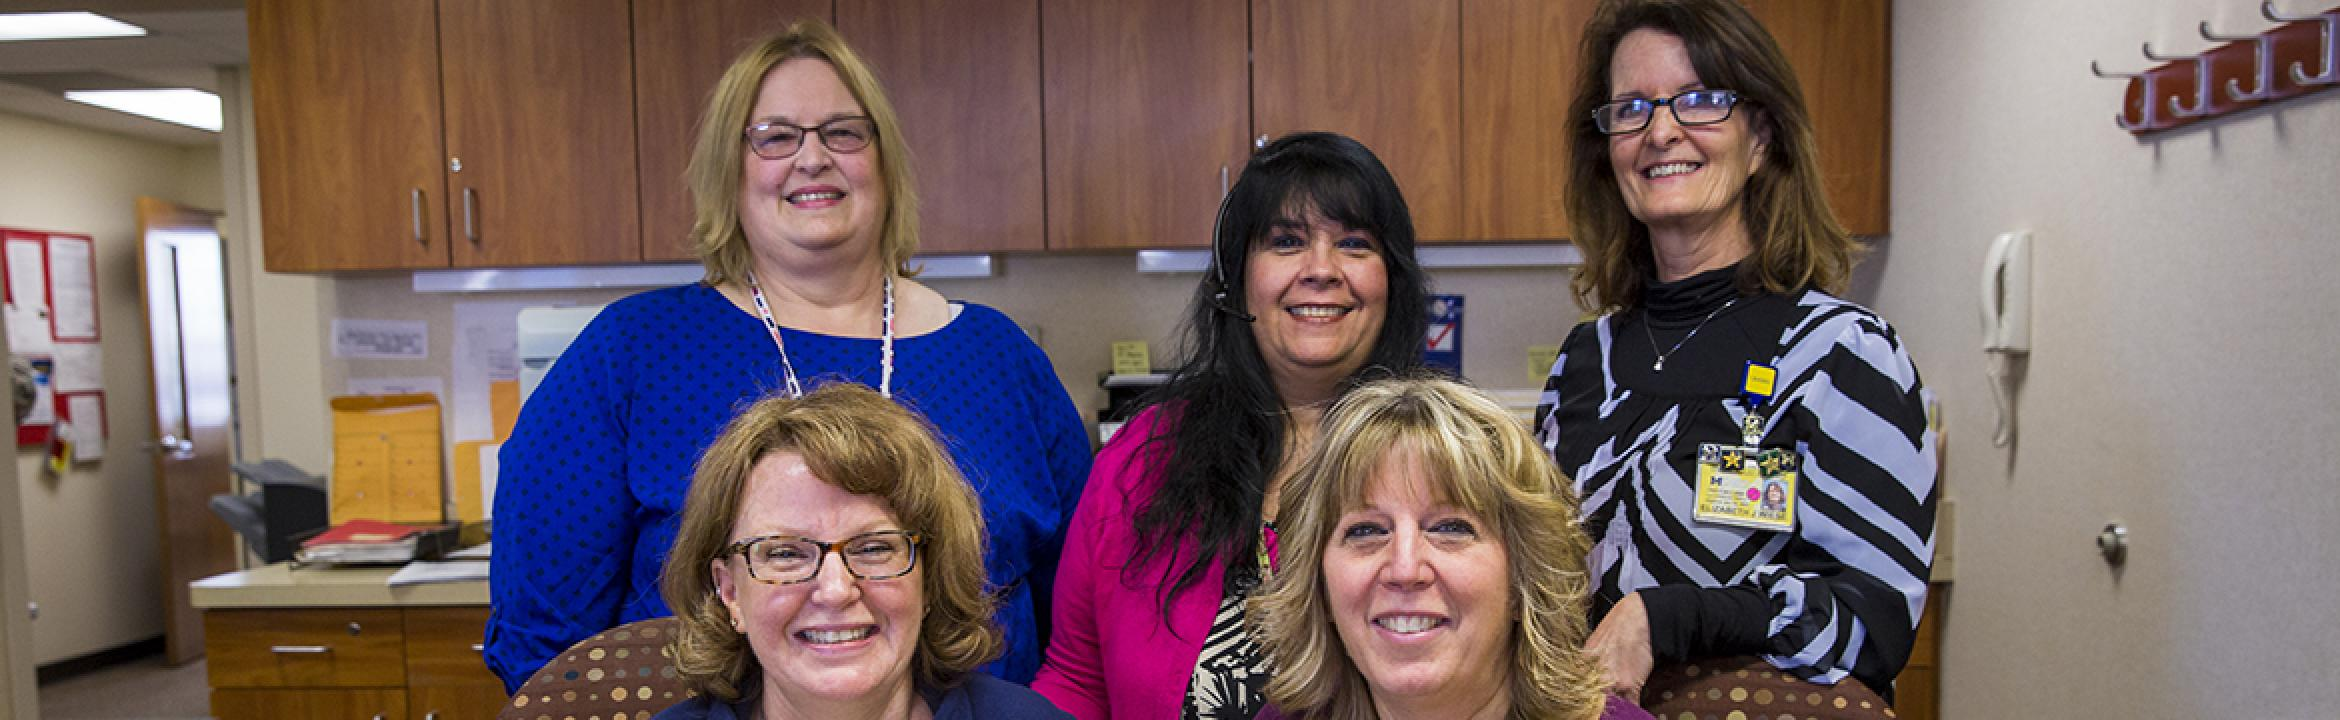 CRM office staff group photo